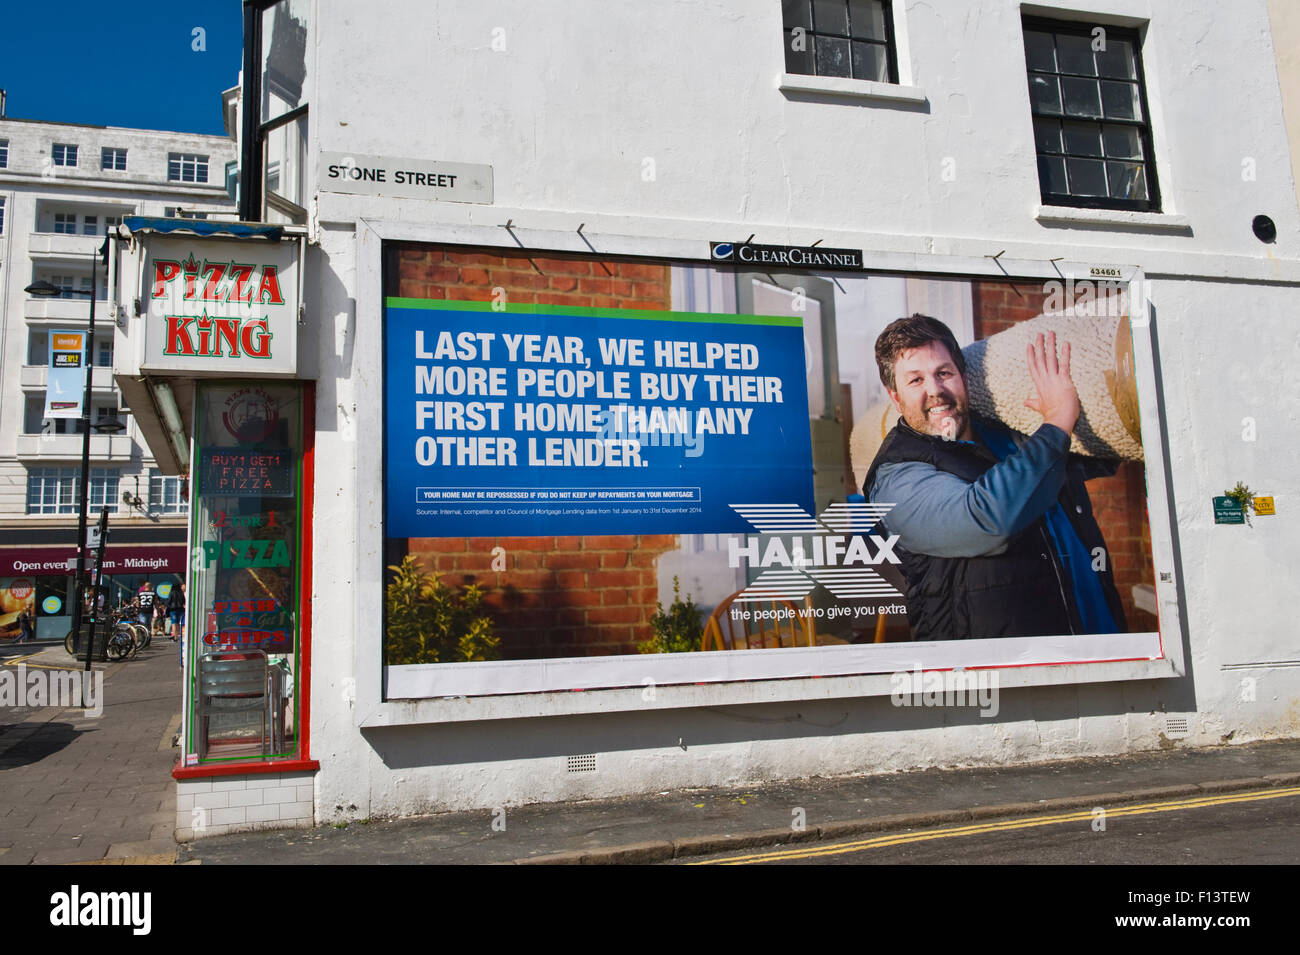 ClearChannel 48 sheet billboard poster advertising Halifax Building Society on street corner in Brighton East Sussex - Stock Image